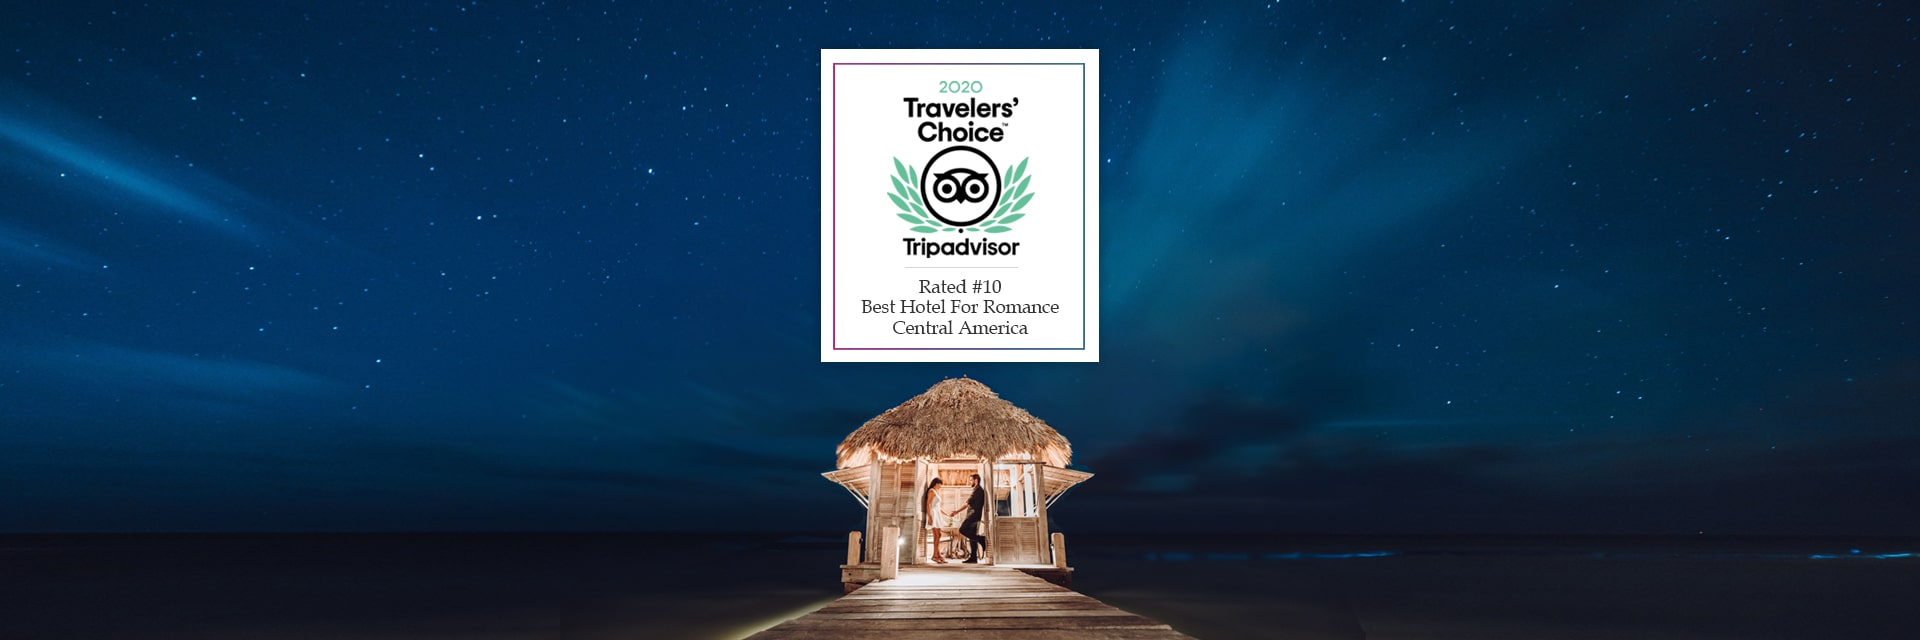 2020 Travelers Choice - Best Hotel for Romance Central America